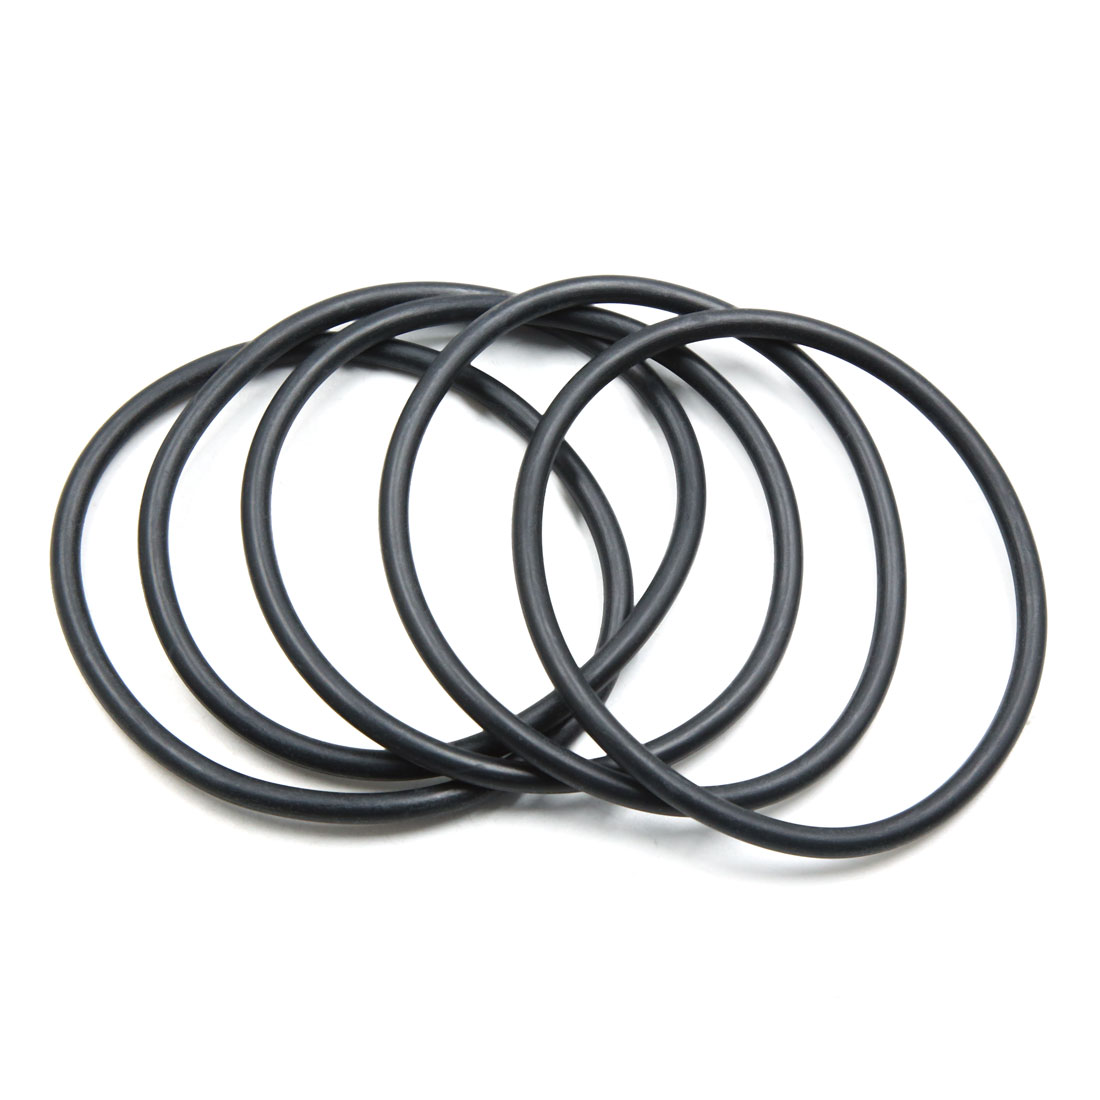 5pcs Black NBR O-Ring Seal Gasket Washer for Automotive Car 90mm x 5.3mm